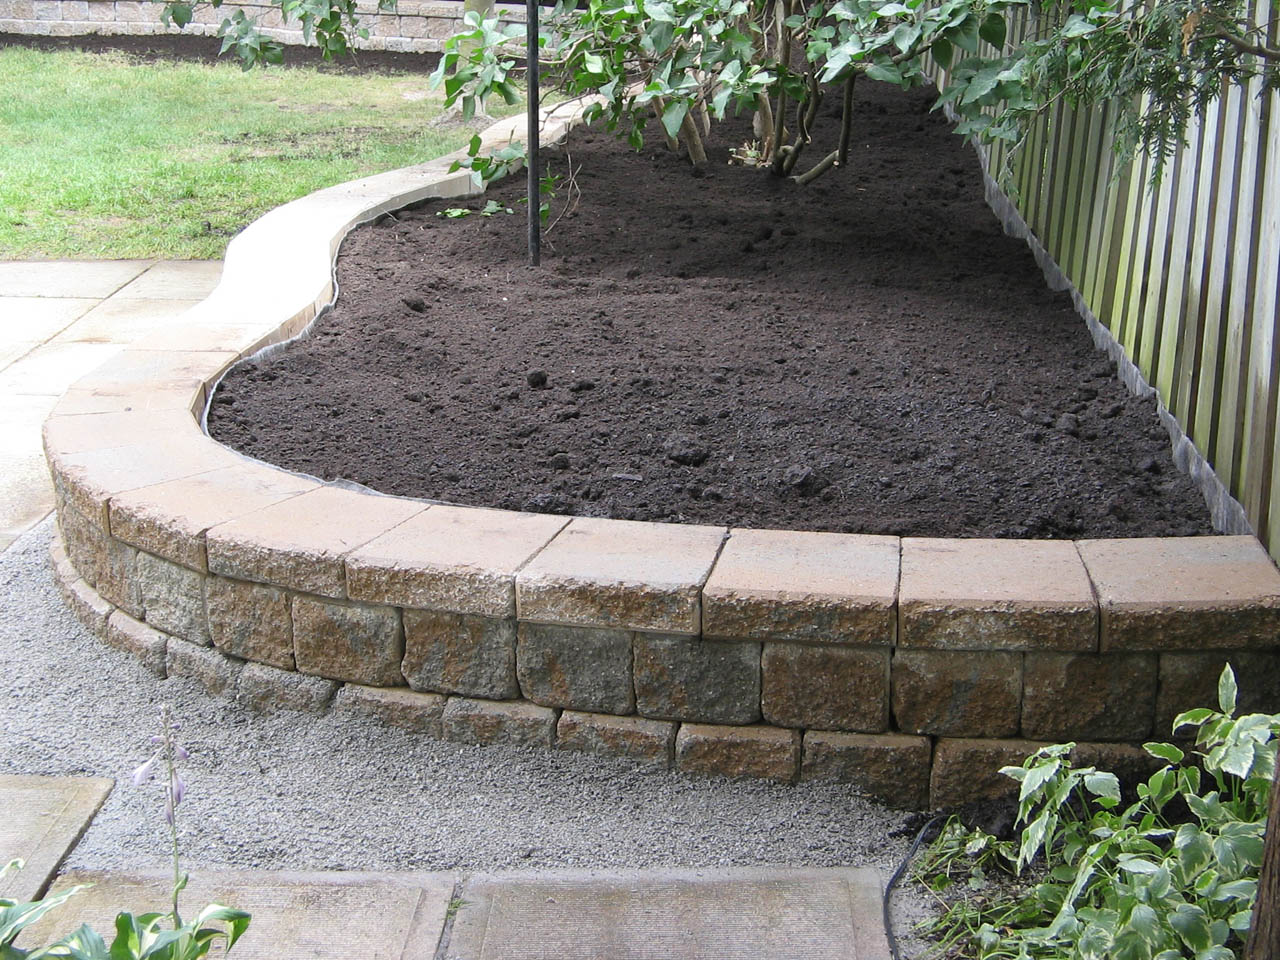 diy landscaping ideas sloping backyards html with Landscaping Ideas Backyard Borders on Garden Equip And Beautiful Hanging Gardens Planting On A Slope besides Paving Adelaide besides Landscaping Ideas For Hillside Front Yard in addition Retaining Wood furthermore 8da06afd9f634677.